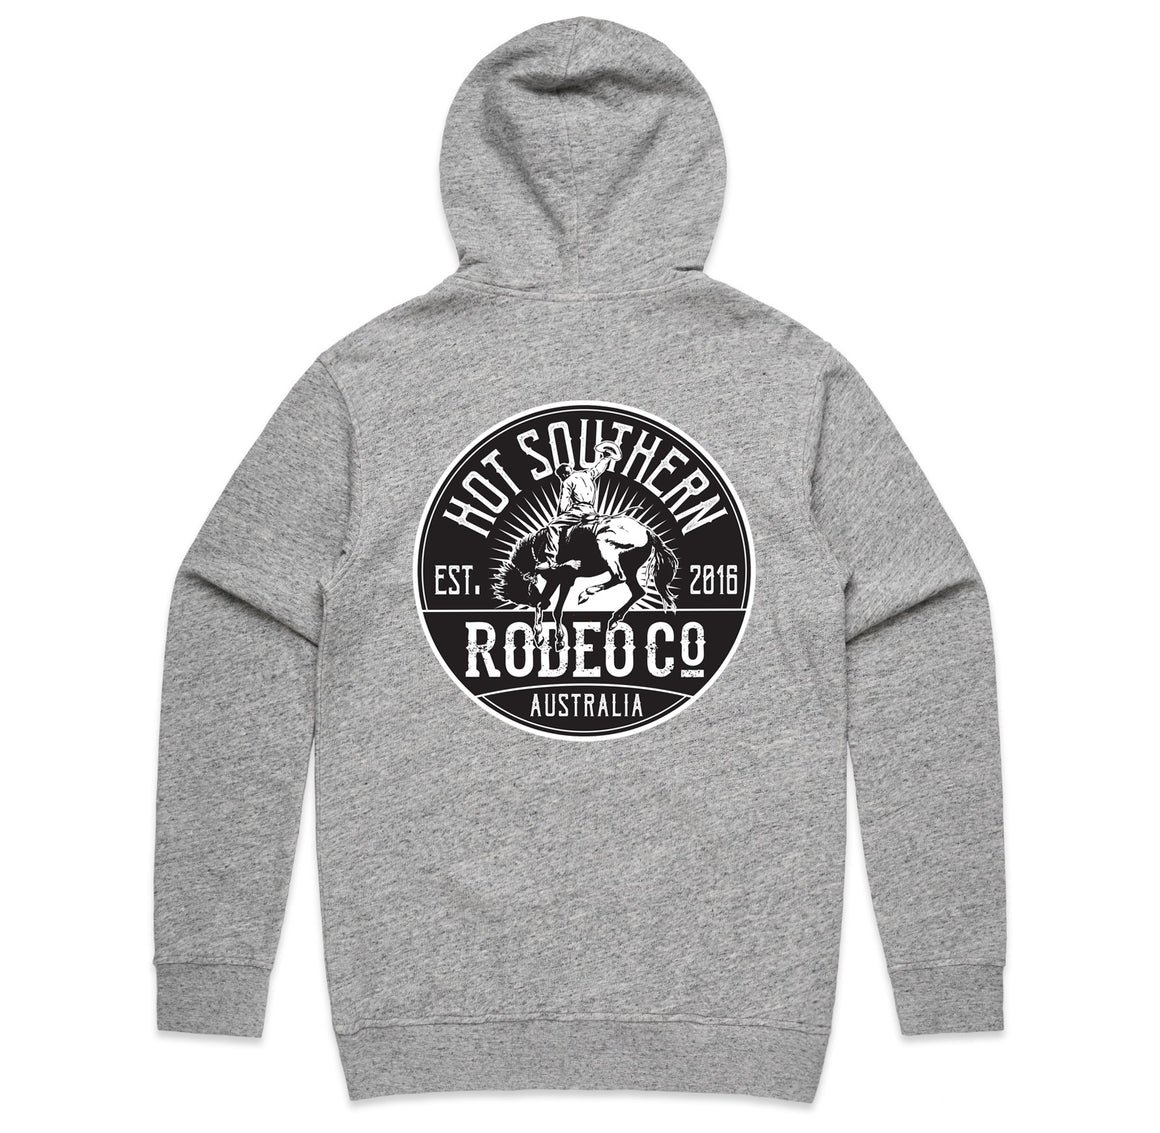 Hot Southern Rodeo Co Bronc Grey Fleck Premium Zip Up Hoodie - Unisex Fit